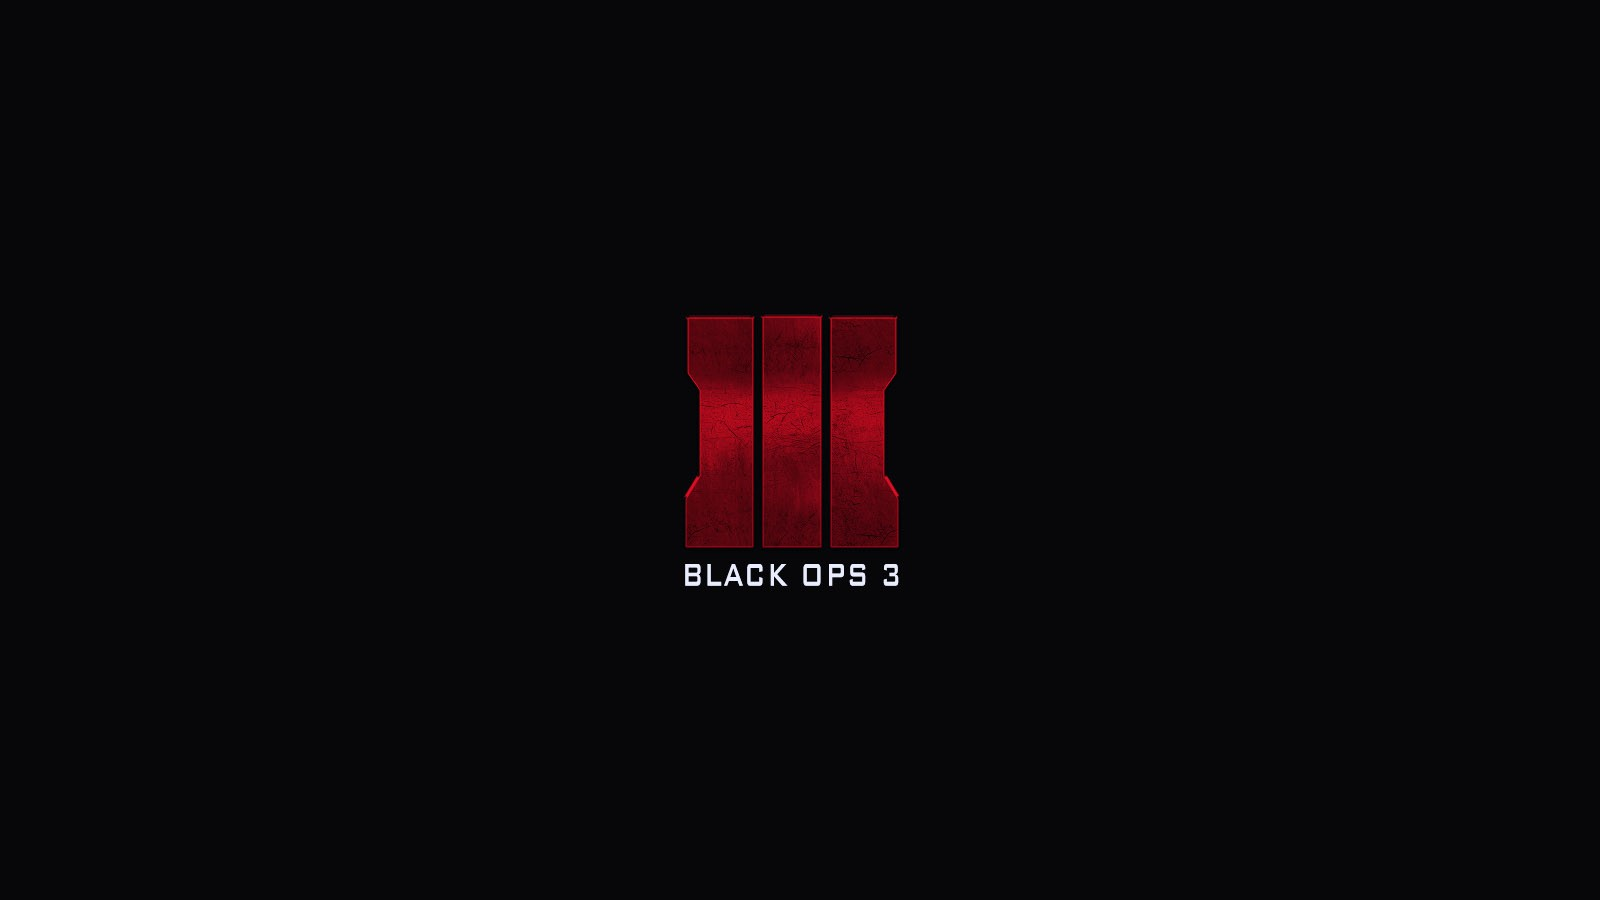 Call of Duty Black Ops 3 black